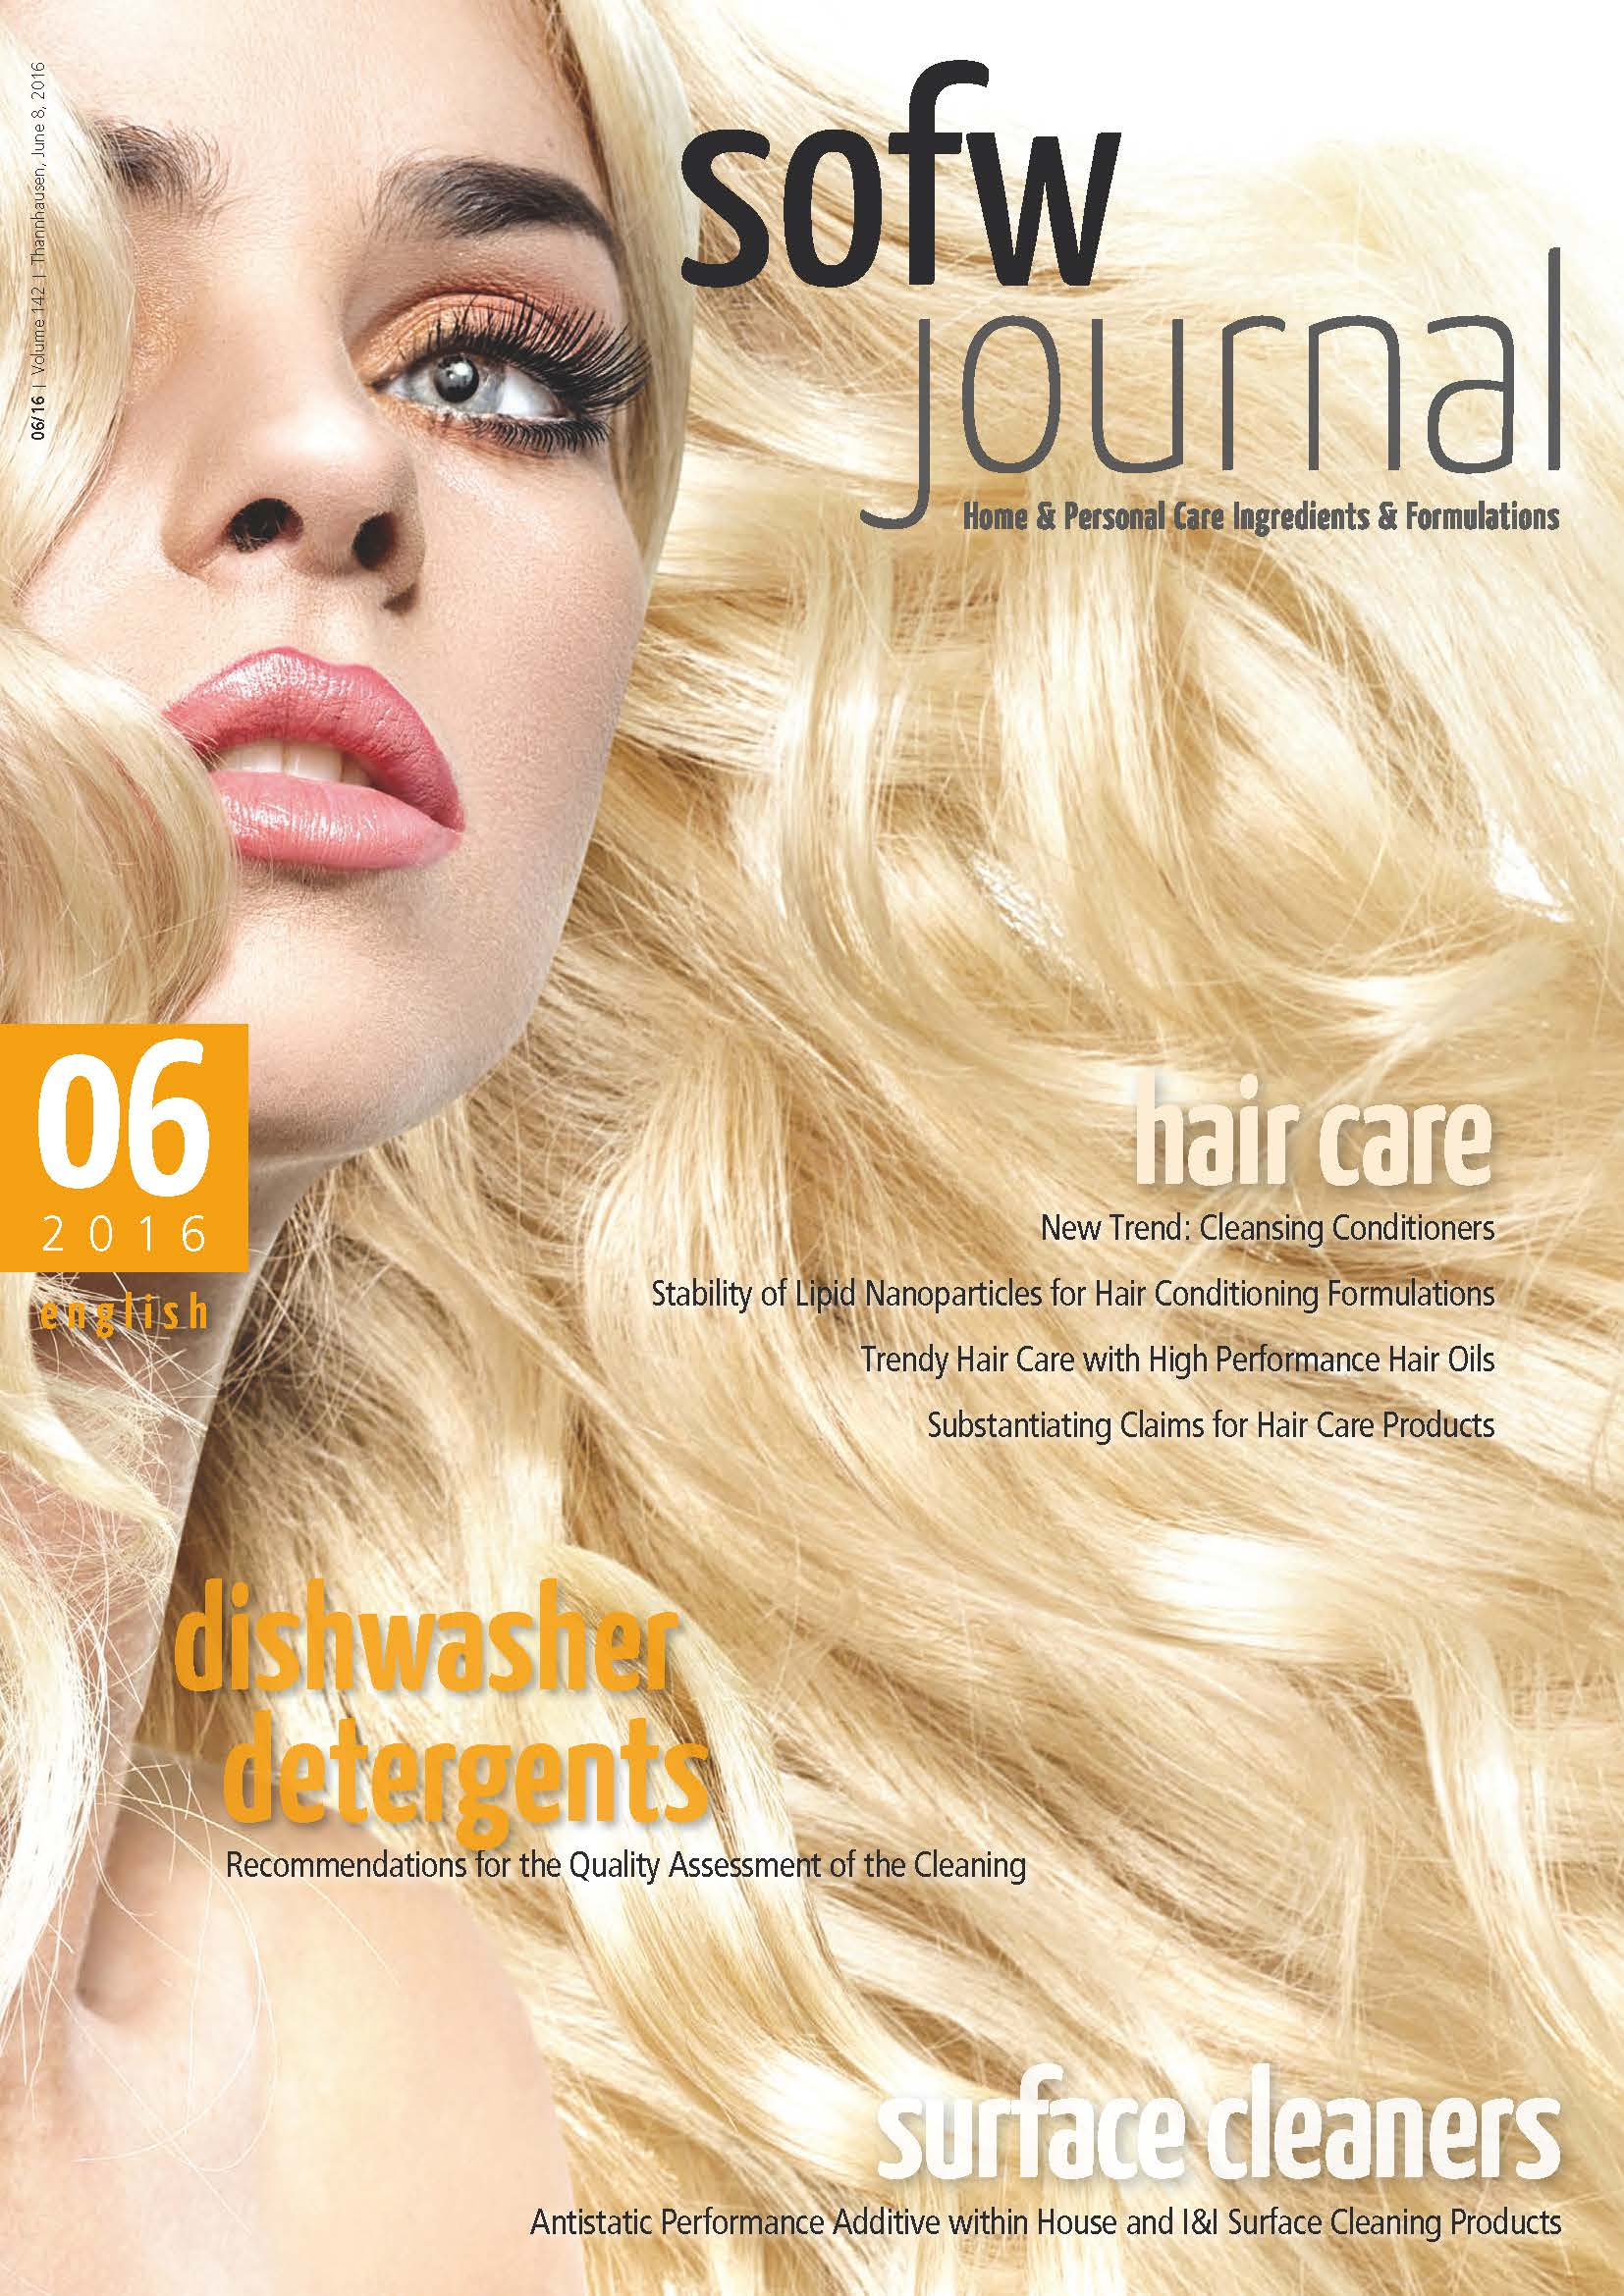 sofwjournal_en_2016_06_cover